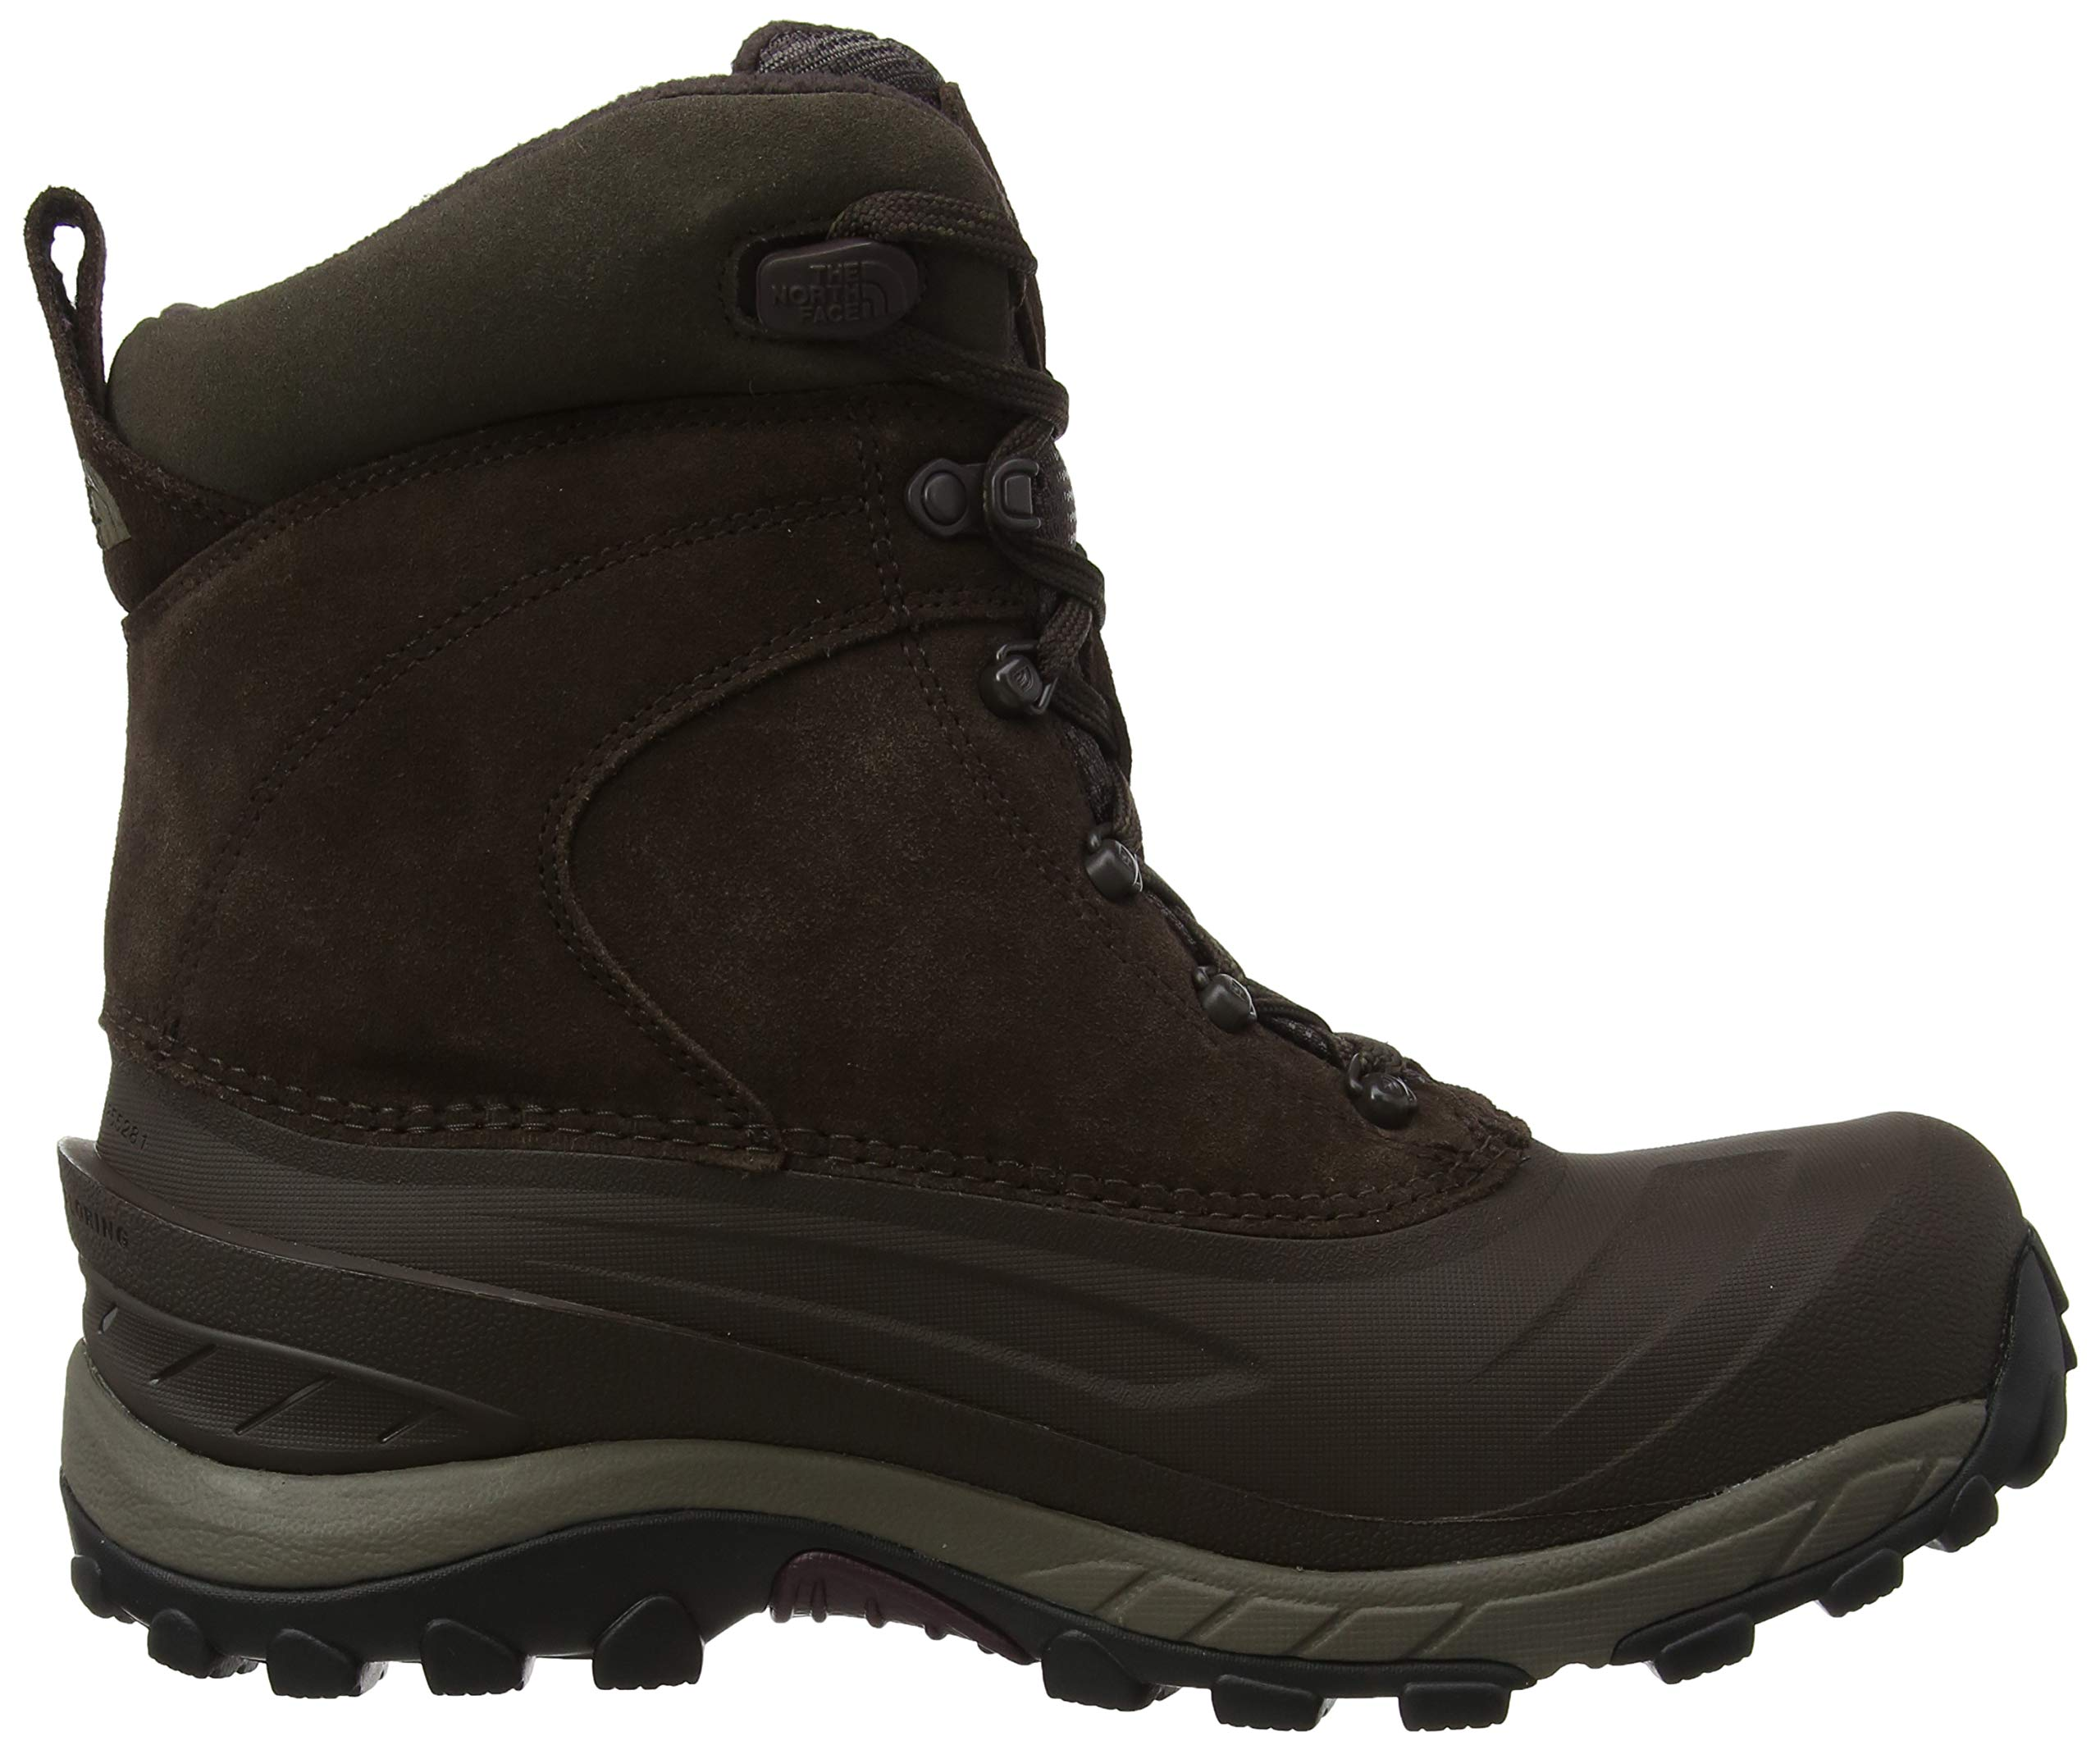 81rmRnBse6L - THE NORTH FACE Men's Chilkat Iii High Rise Hiking Boots